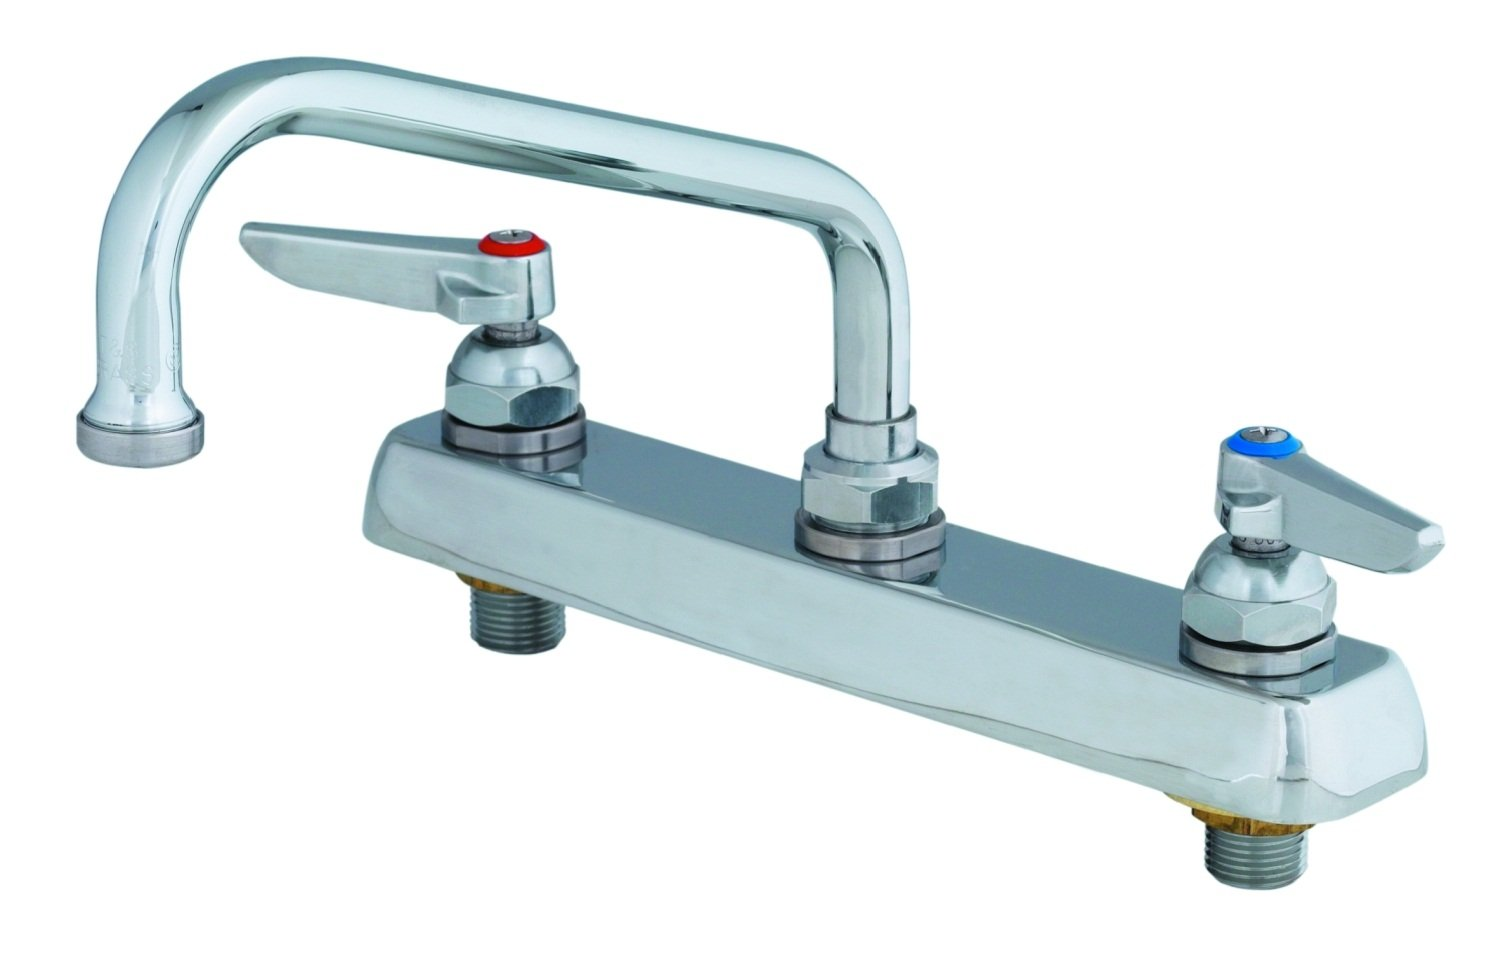 TS Brass B-1121 Workboard Commercial Faucet Chrome